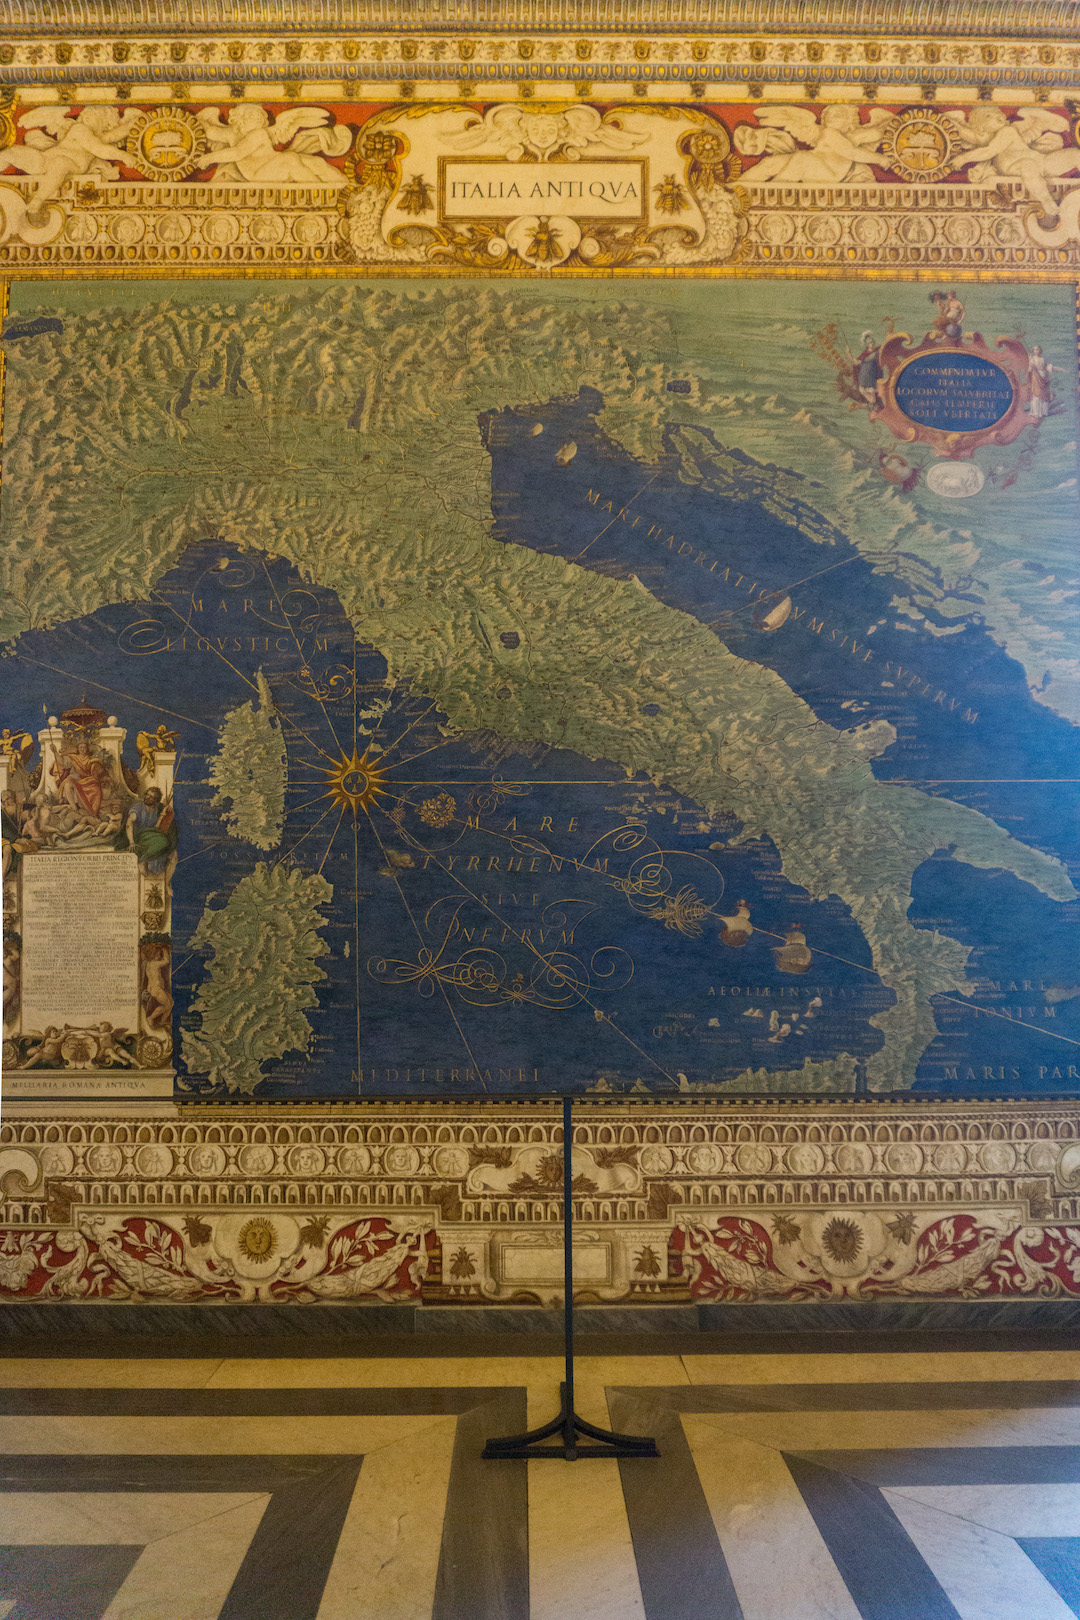 Old Map of Italy in the Vatican